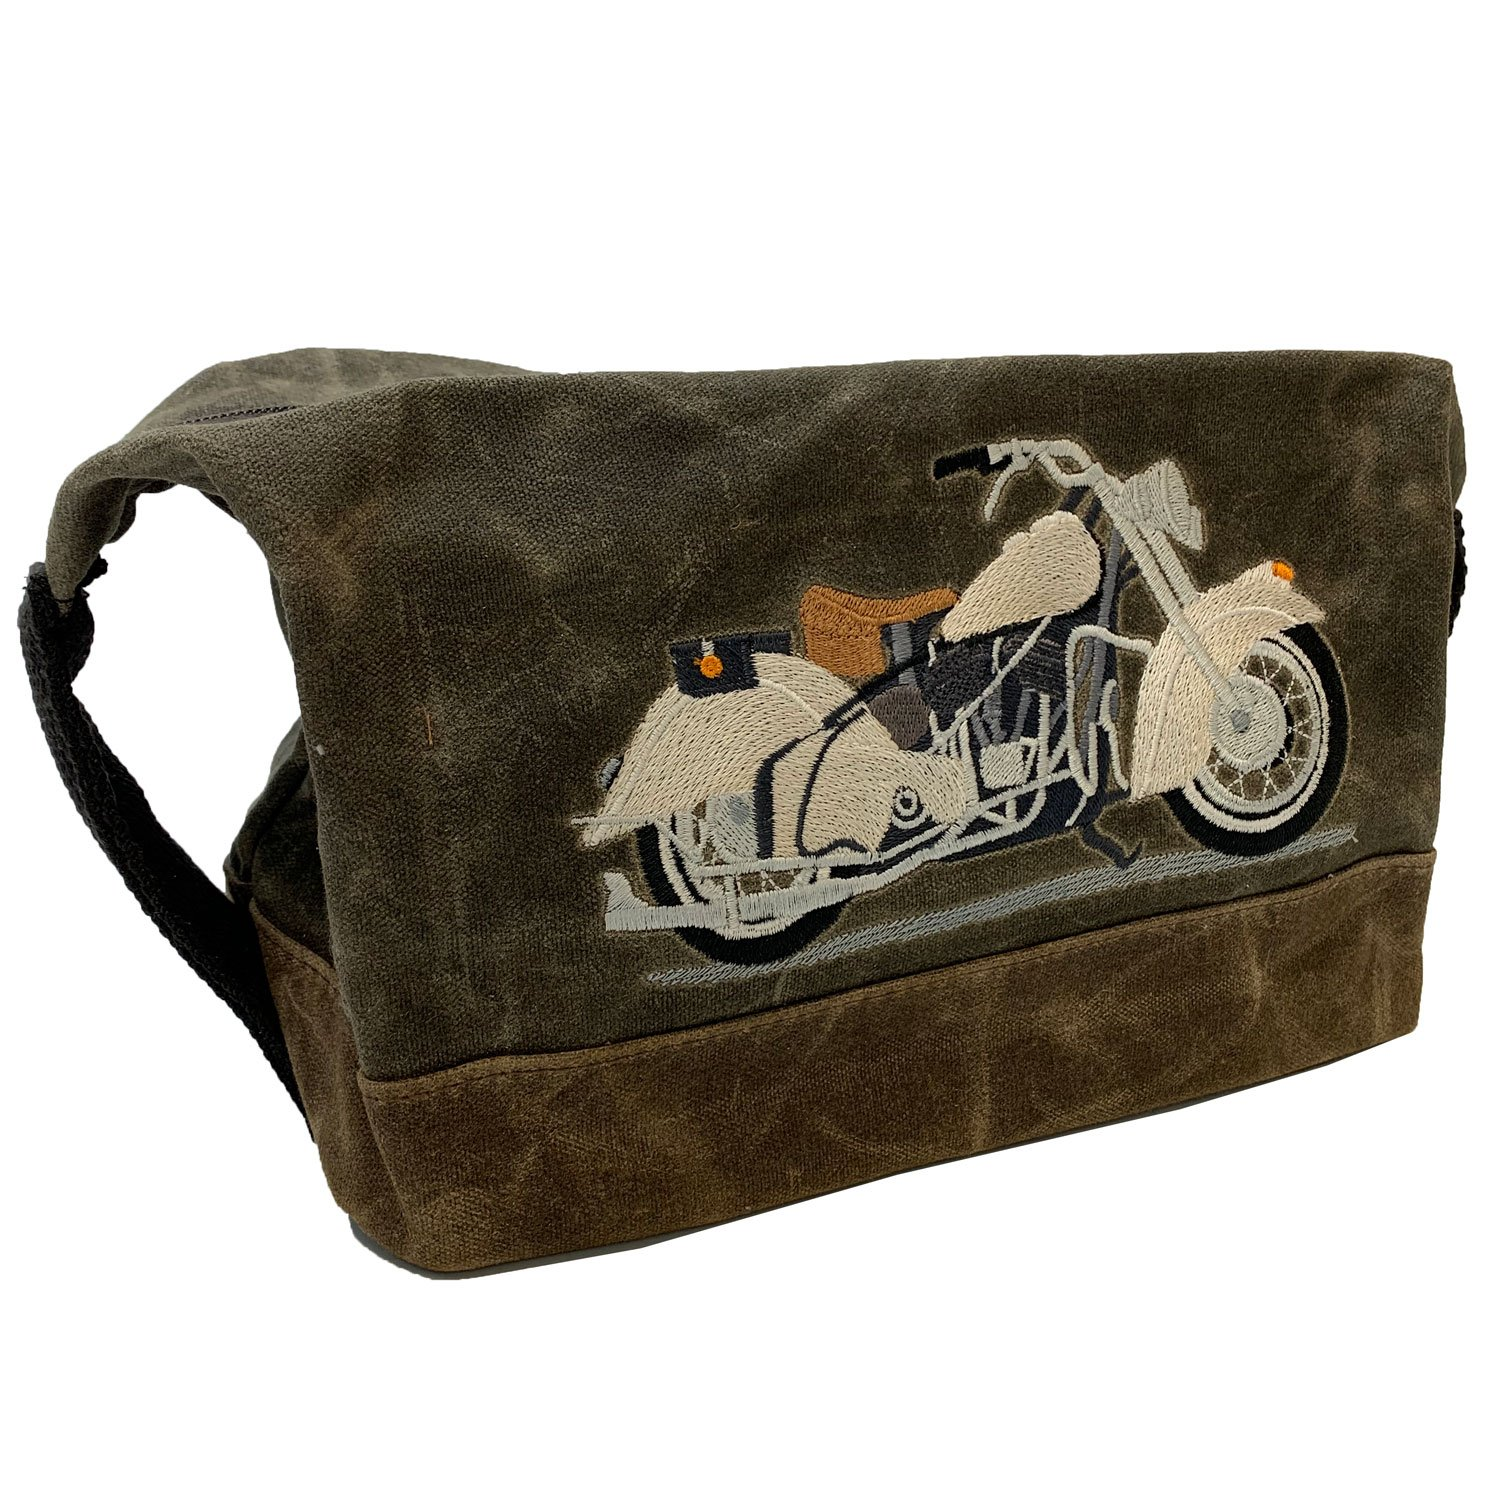 Embroidered Waxed Canvas Bag Open Road Motorcycle